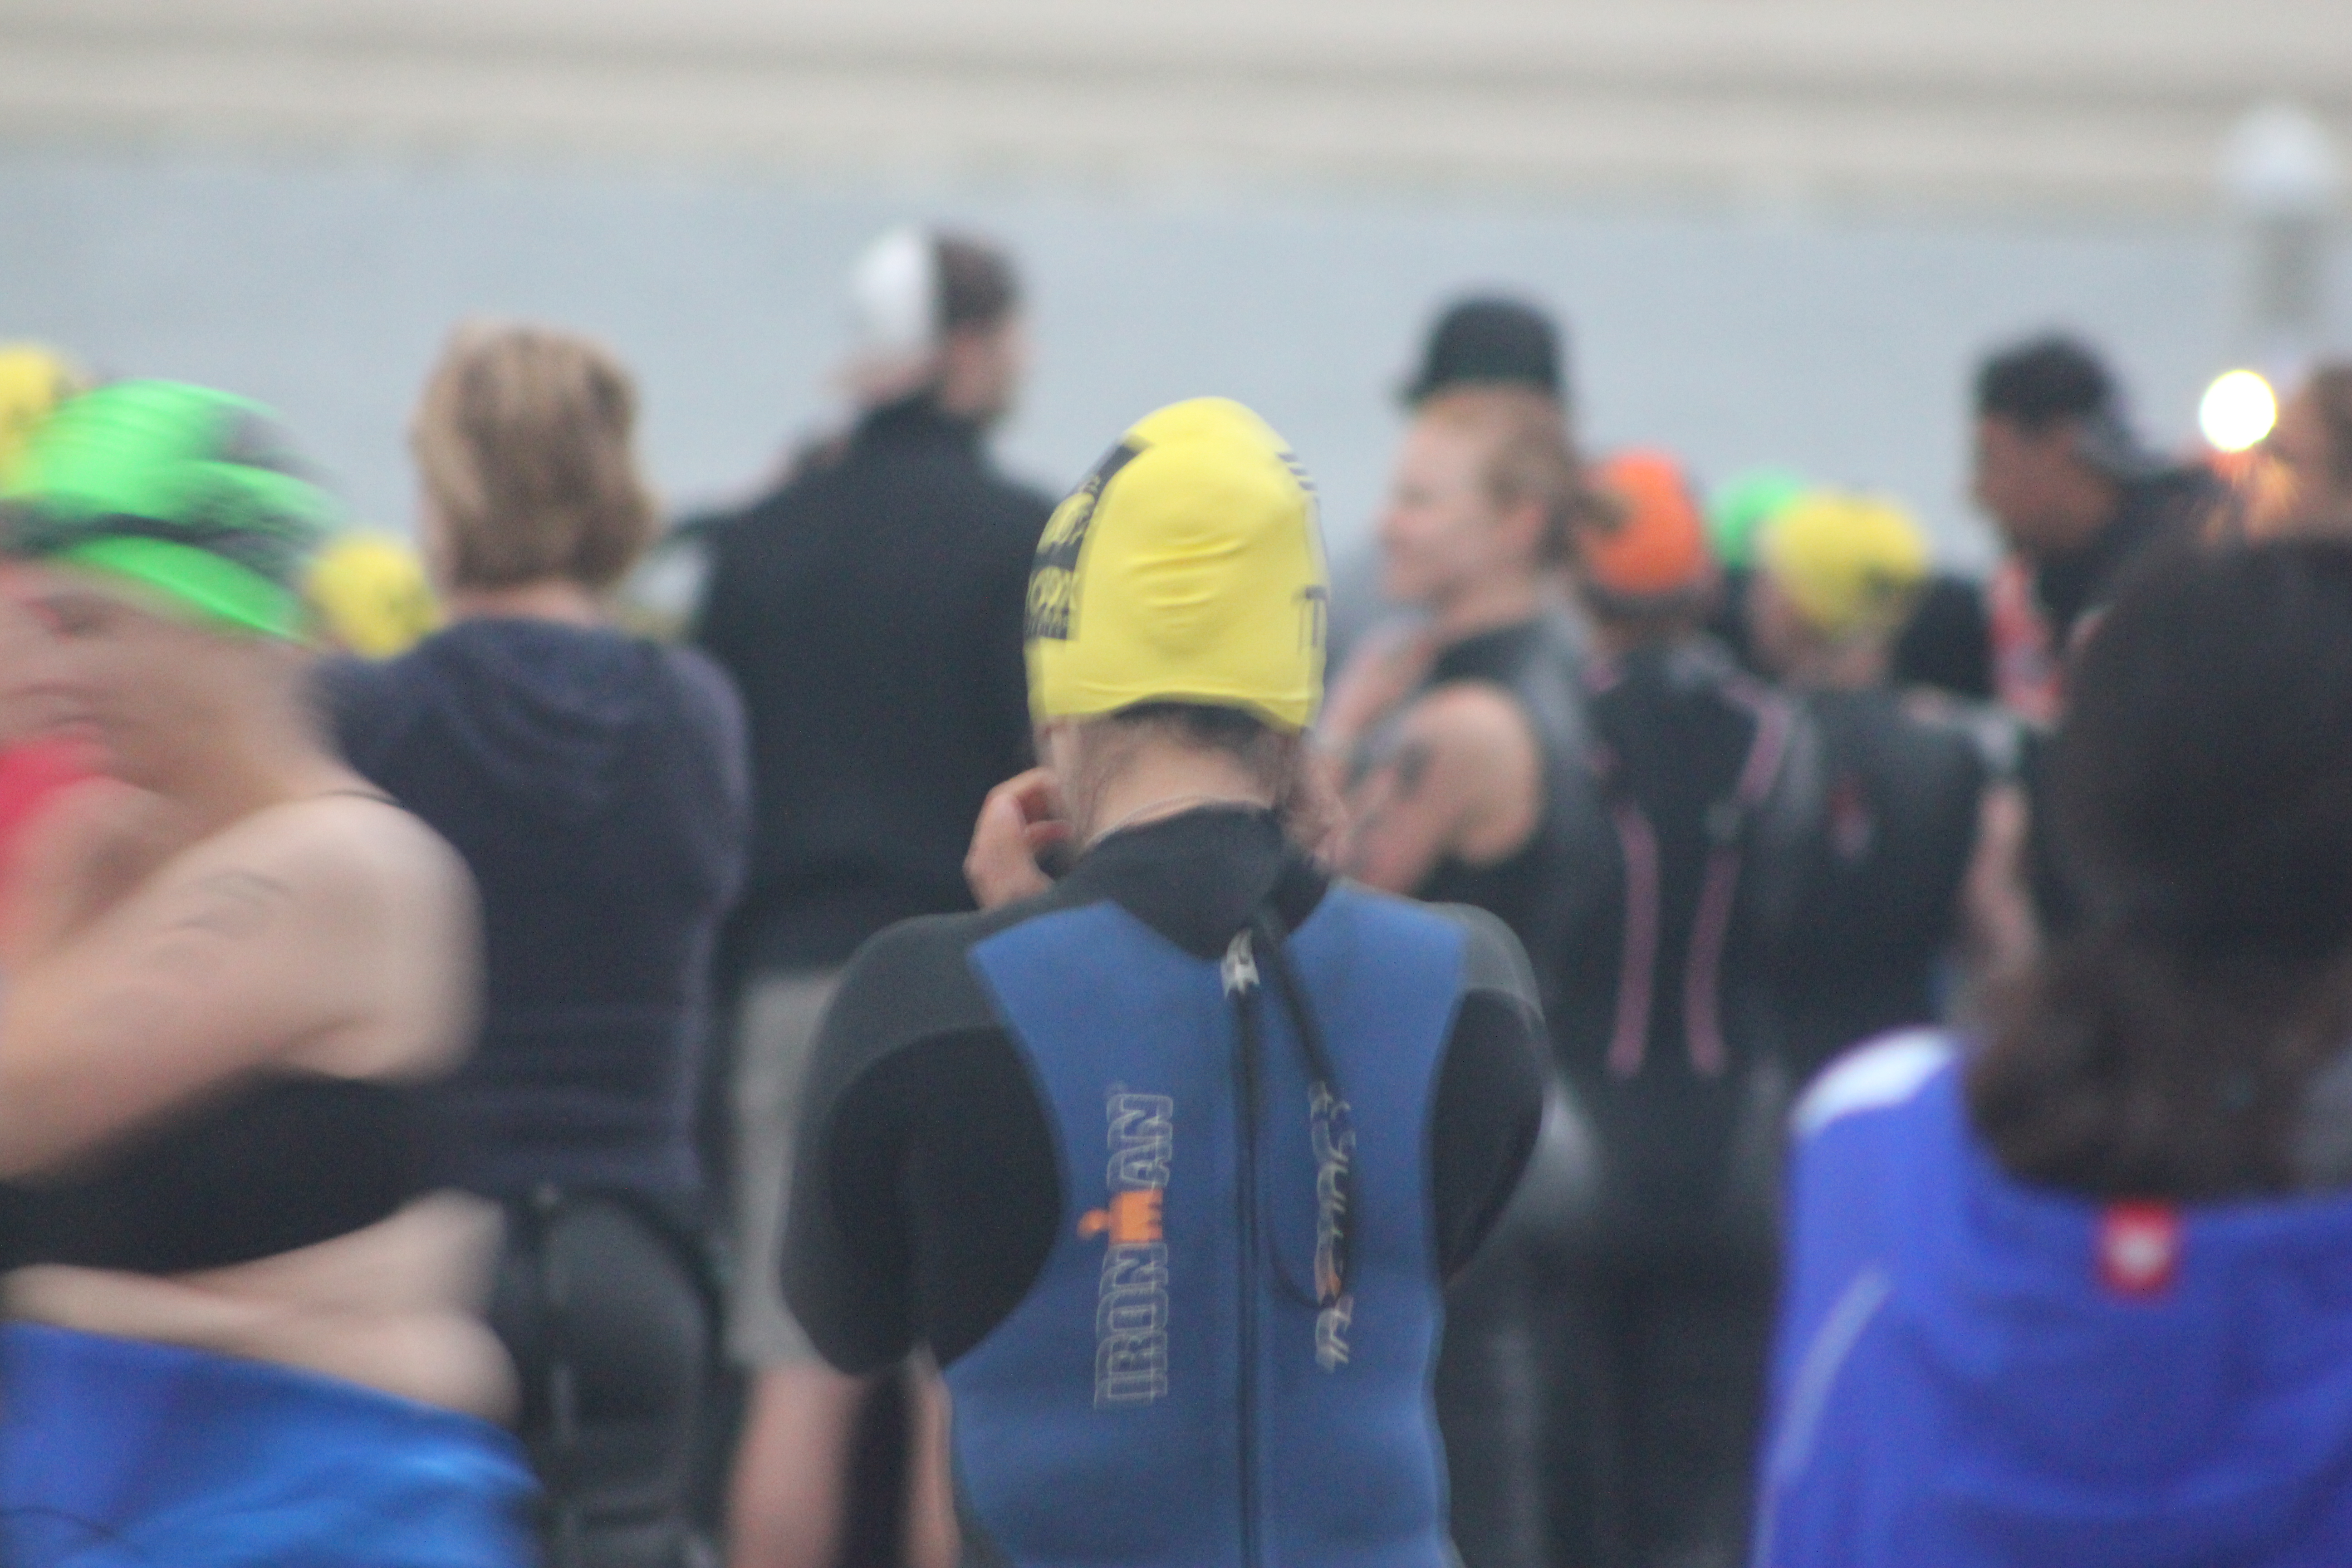 Cathy's (yellow cap) before swimming, SheRox Triathlon (2011 October 15) San Diego CA